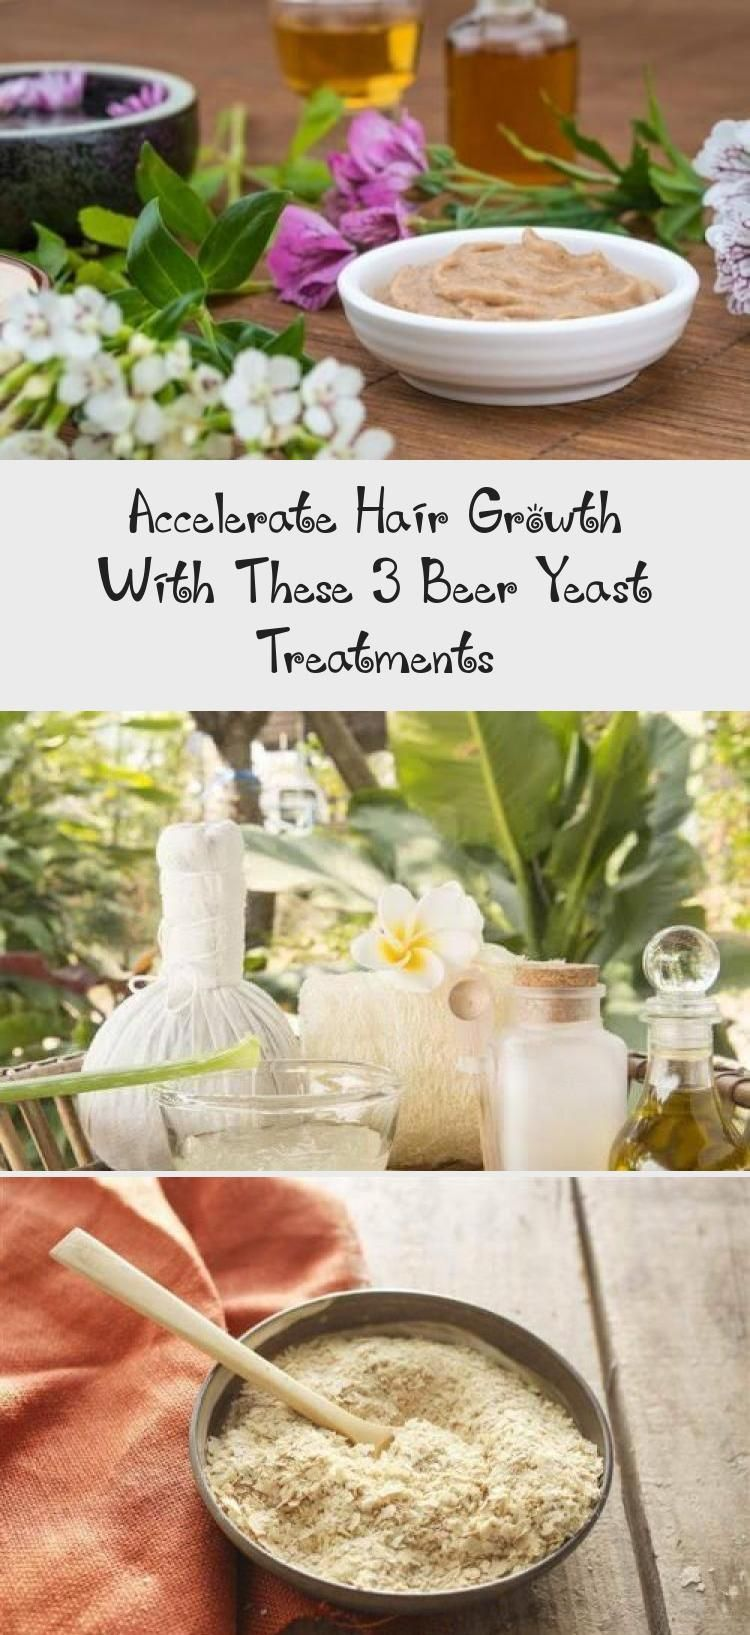 Supplement for Hair Growth} and Accelerate Hair Growth With These 3 Beer Yeast Treatments -  Accelerate Hair Growth with These 3 Beer Yeast Treatments #hairgrowthProducts #hairgrowthForKids #hairgrowthSerum #Quickhairgrowth   - #castoroilforHairGrowth #HairGrowth #HairGrowthafricanamerican #HairGrowthbeforeandafter #HairGrowthchart #HairGrowthdiy #HairGrowthfaster #HairGrowthinaweek #HairGrowthmask #HairGrowthonion #HairGrowthproducts #HairGrowthshampoo #HairGrowthsuperfast #HairGrowththicker #HairGrowthtips #HairGrowthtreatm